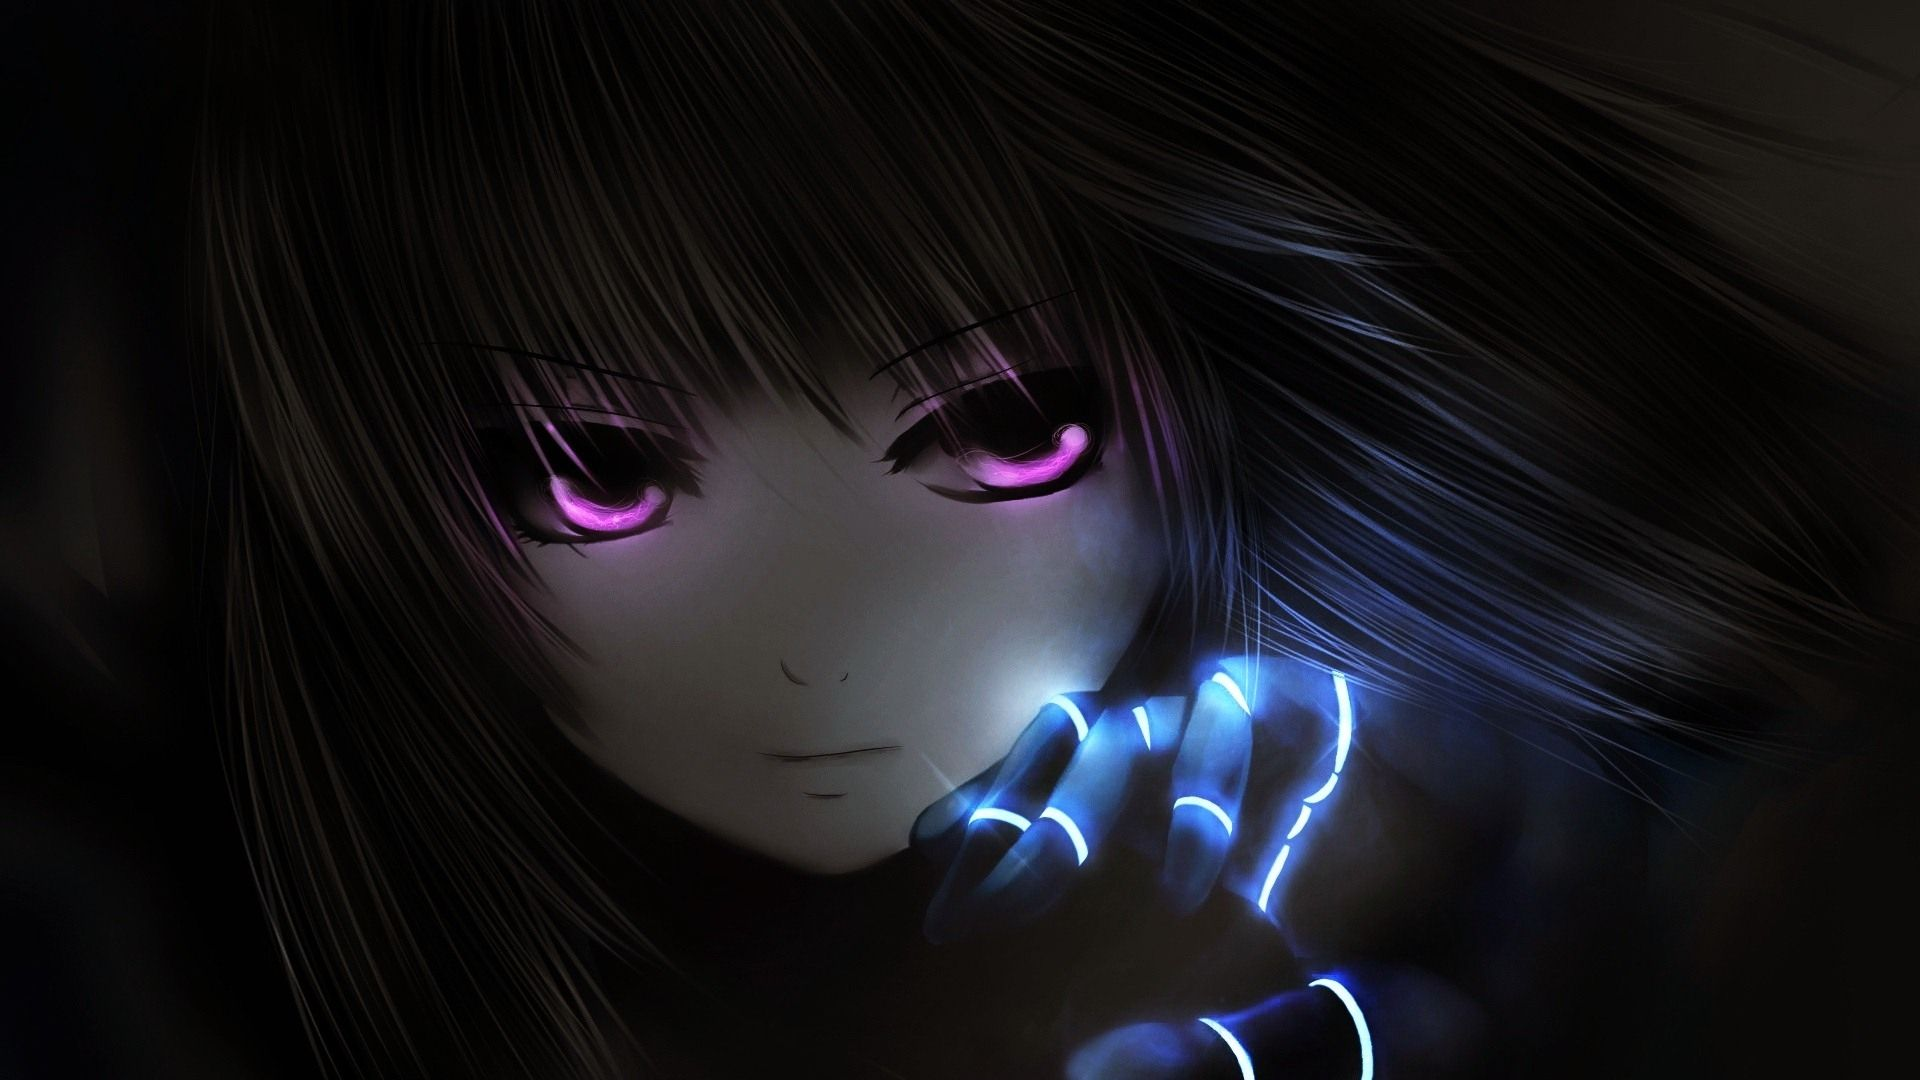 Unduh 5000+ Wallpaper Anime Hd Black HD